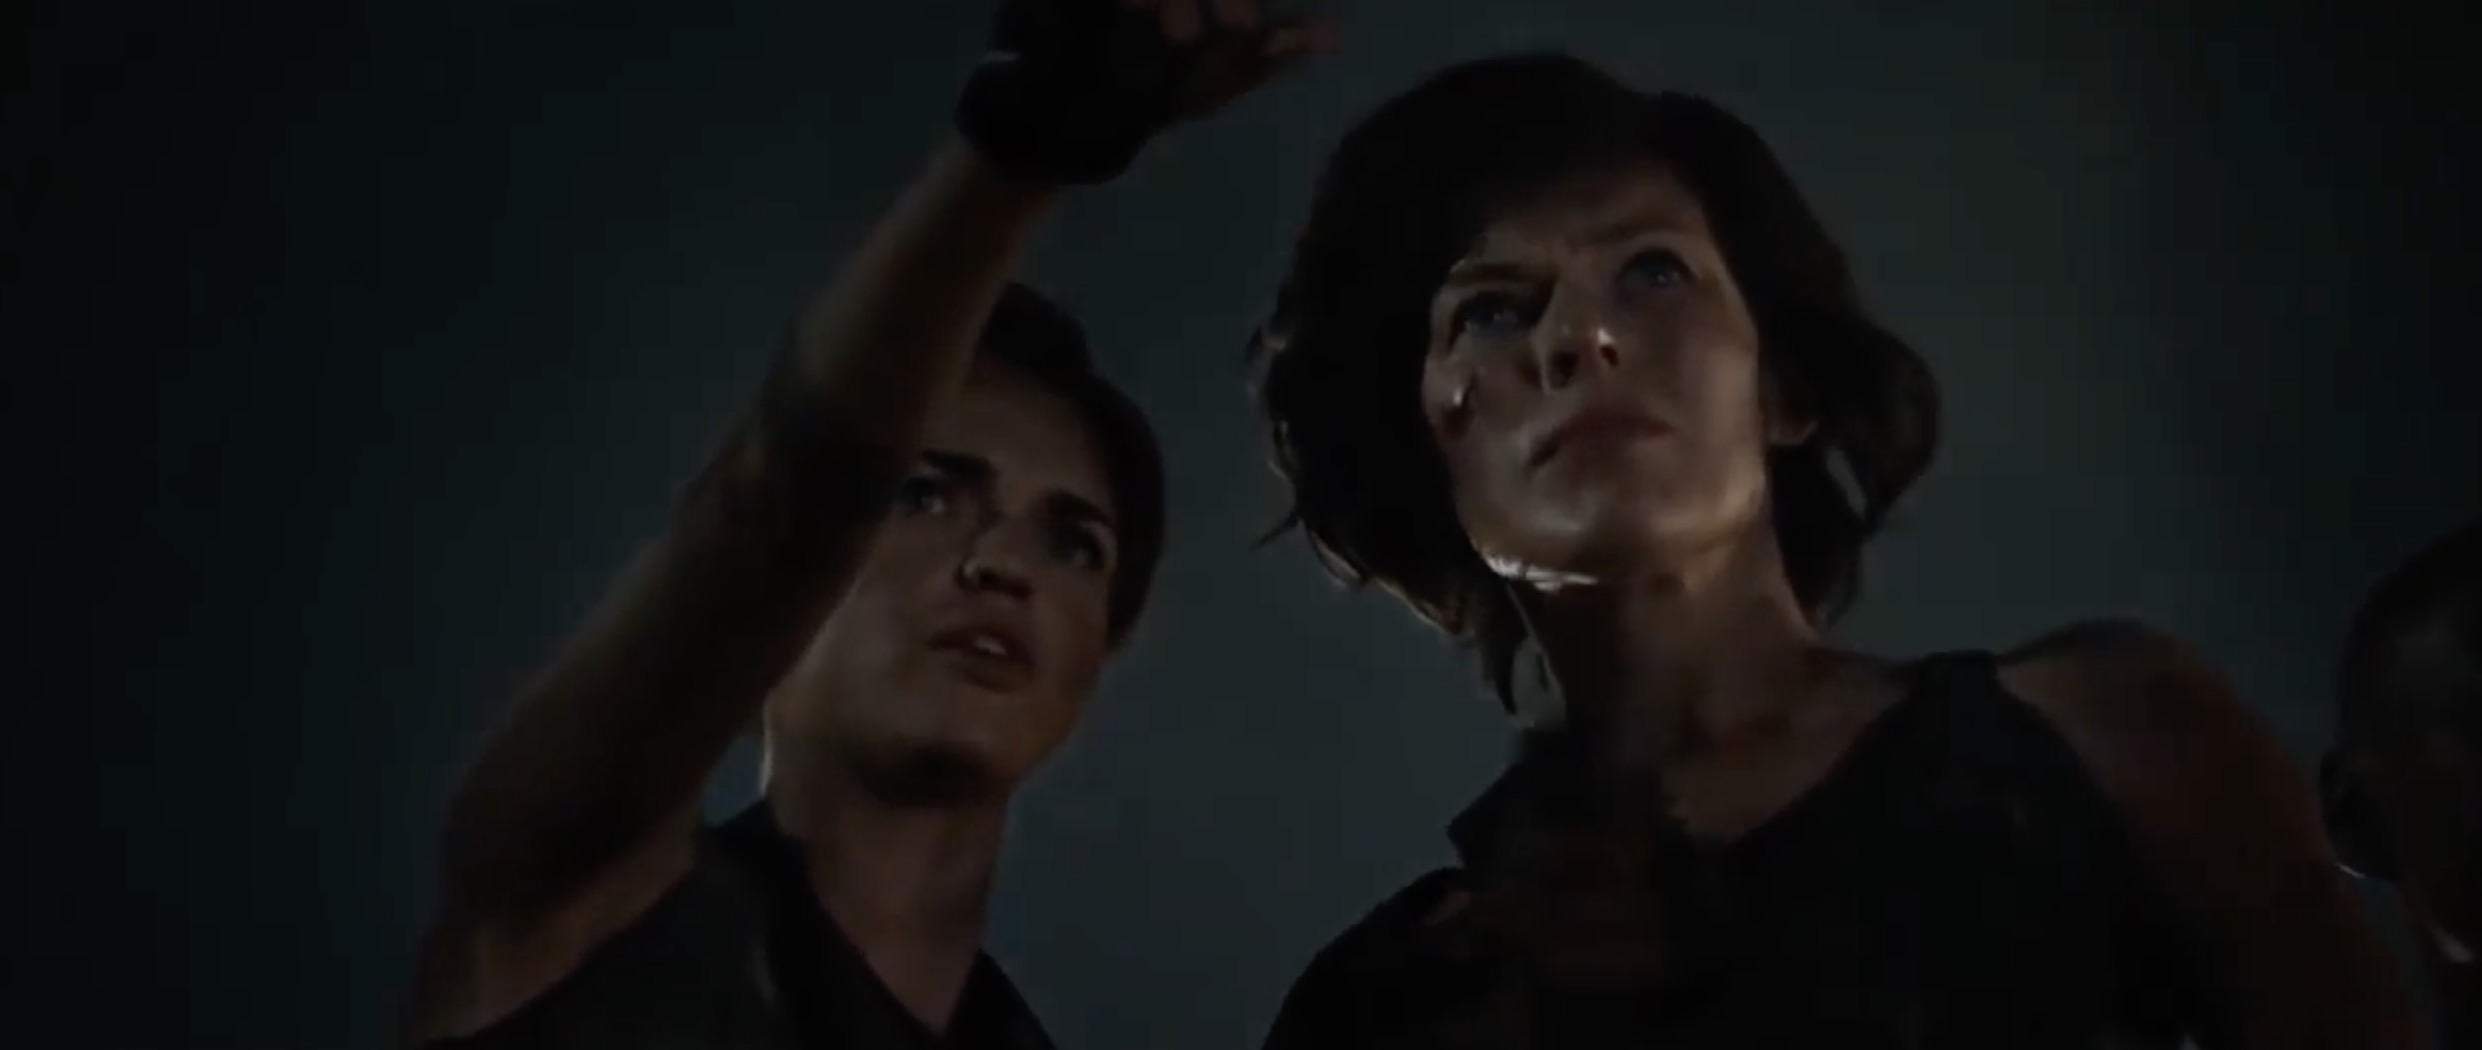 Resident Evil The Final Chapter Ruby Rose: 'Resident Evil: The Final Chapter' Footage Introduces Ruby